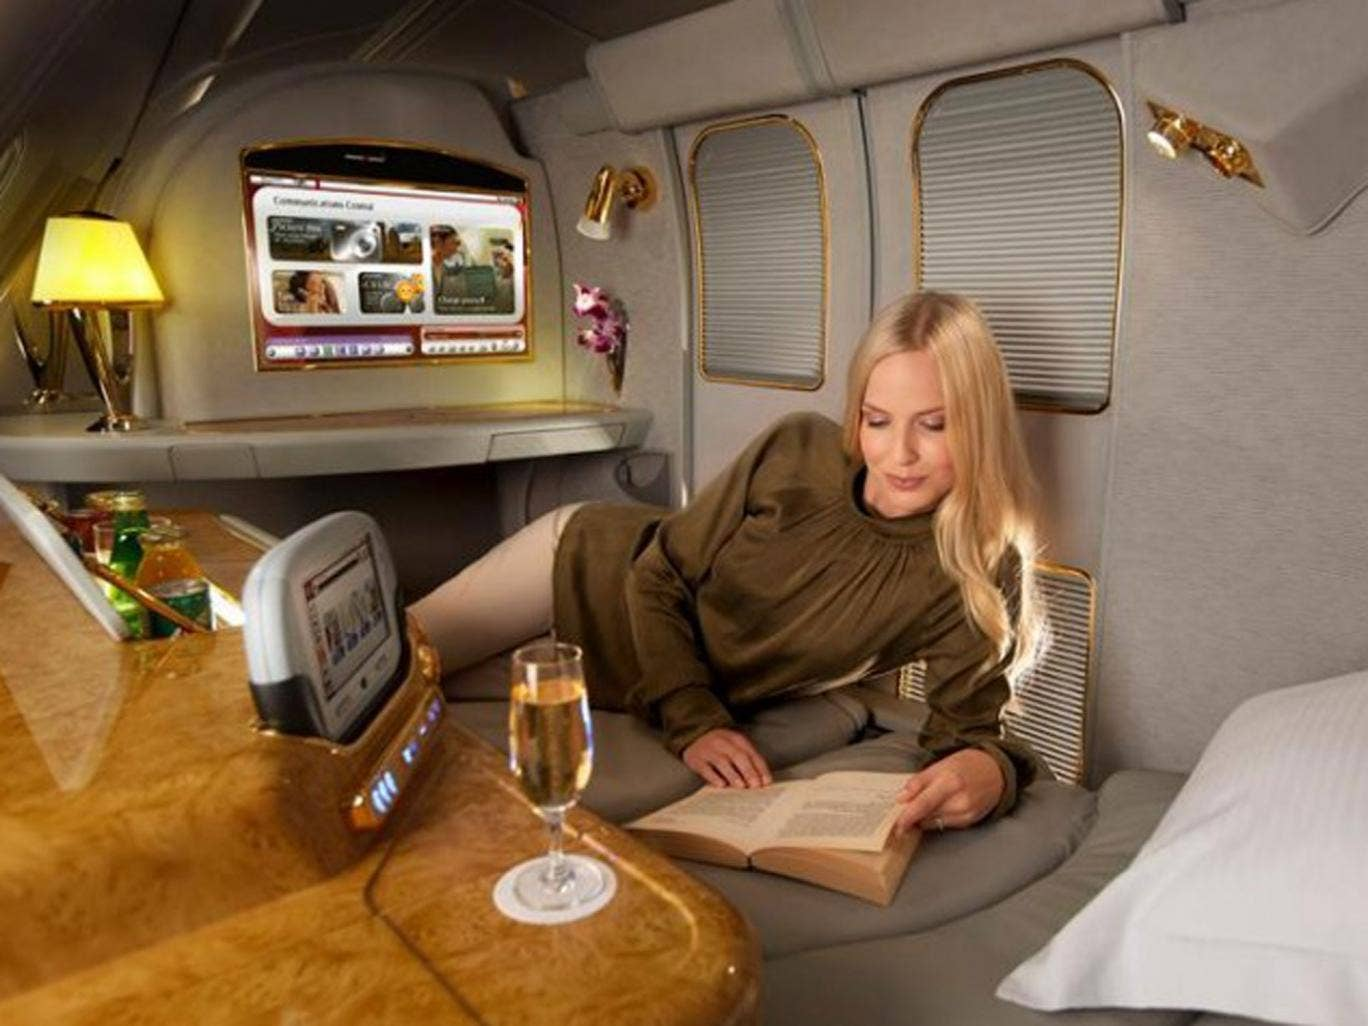 The new advert for the first-class private suites being offered by Emirates Air